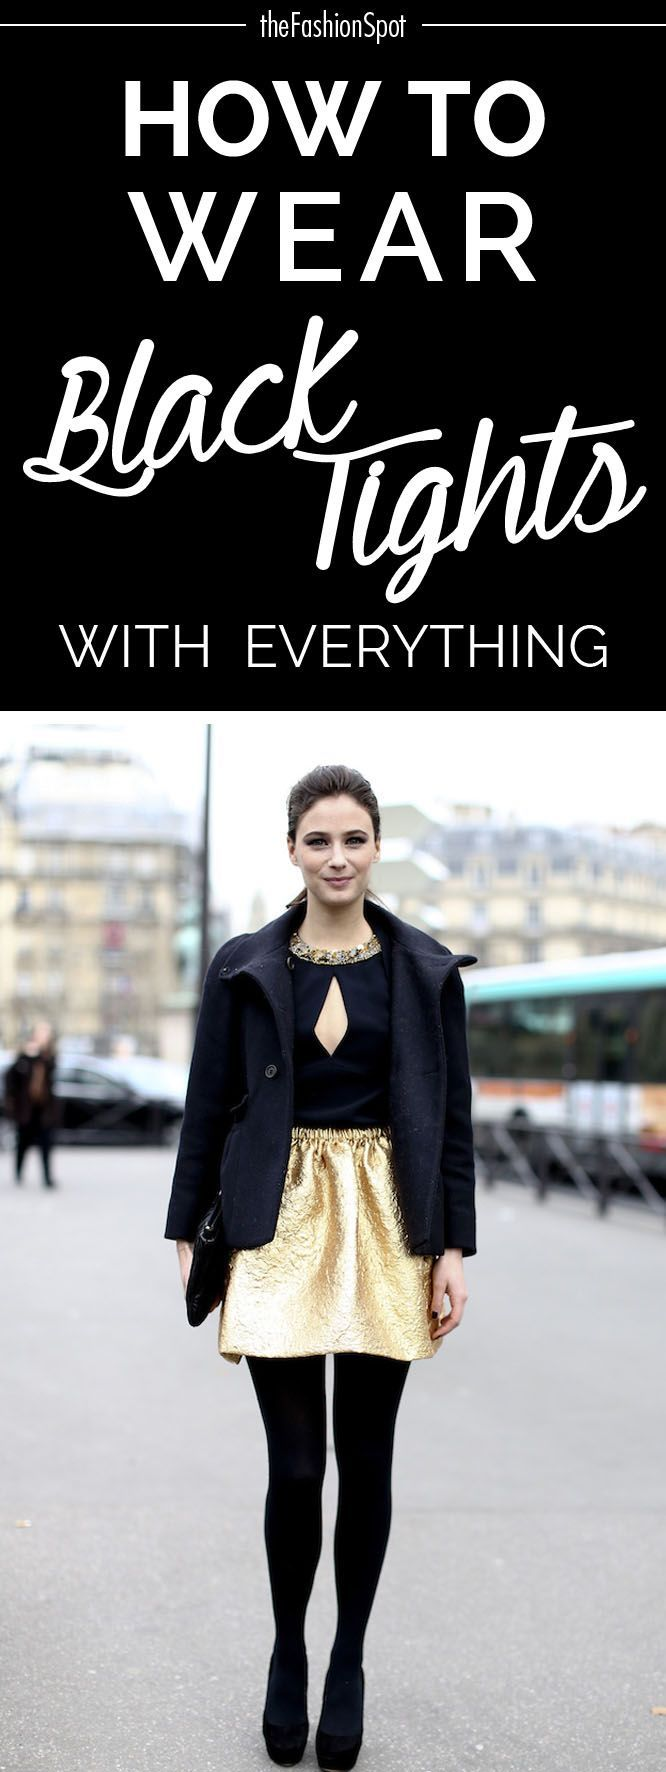 4f3b9bf29 Wear black tights with everything this season -- see how!